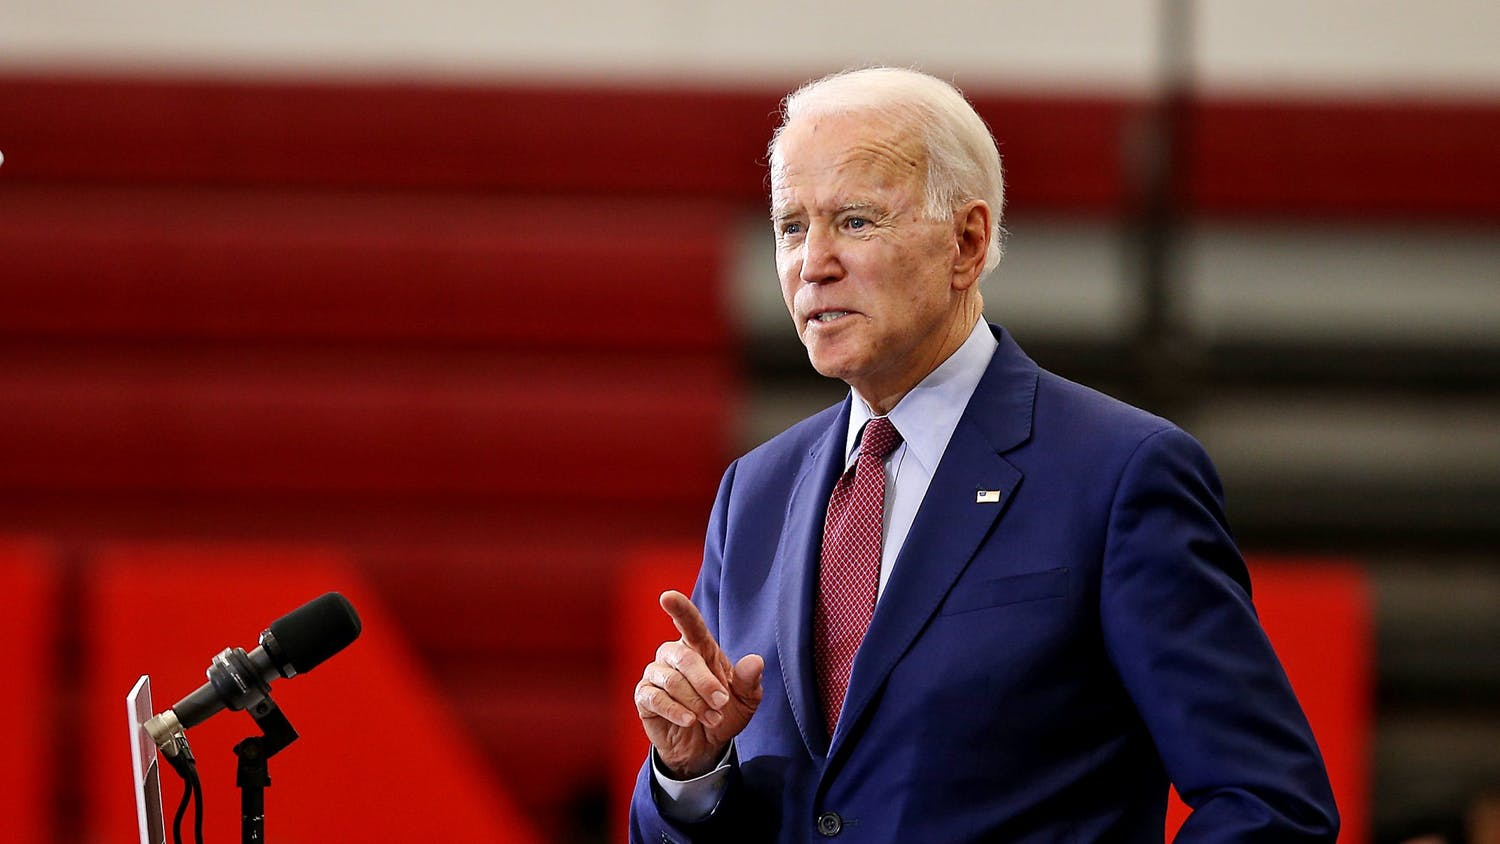 Presidential nominee and former Vice President Joe Biden speaks while standing at a podium.